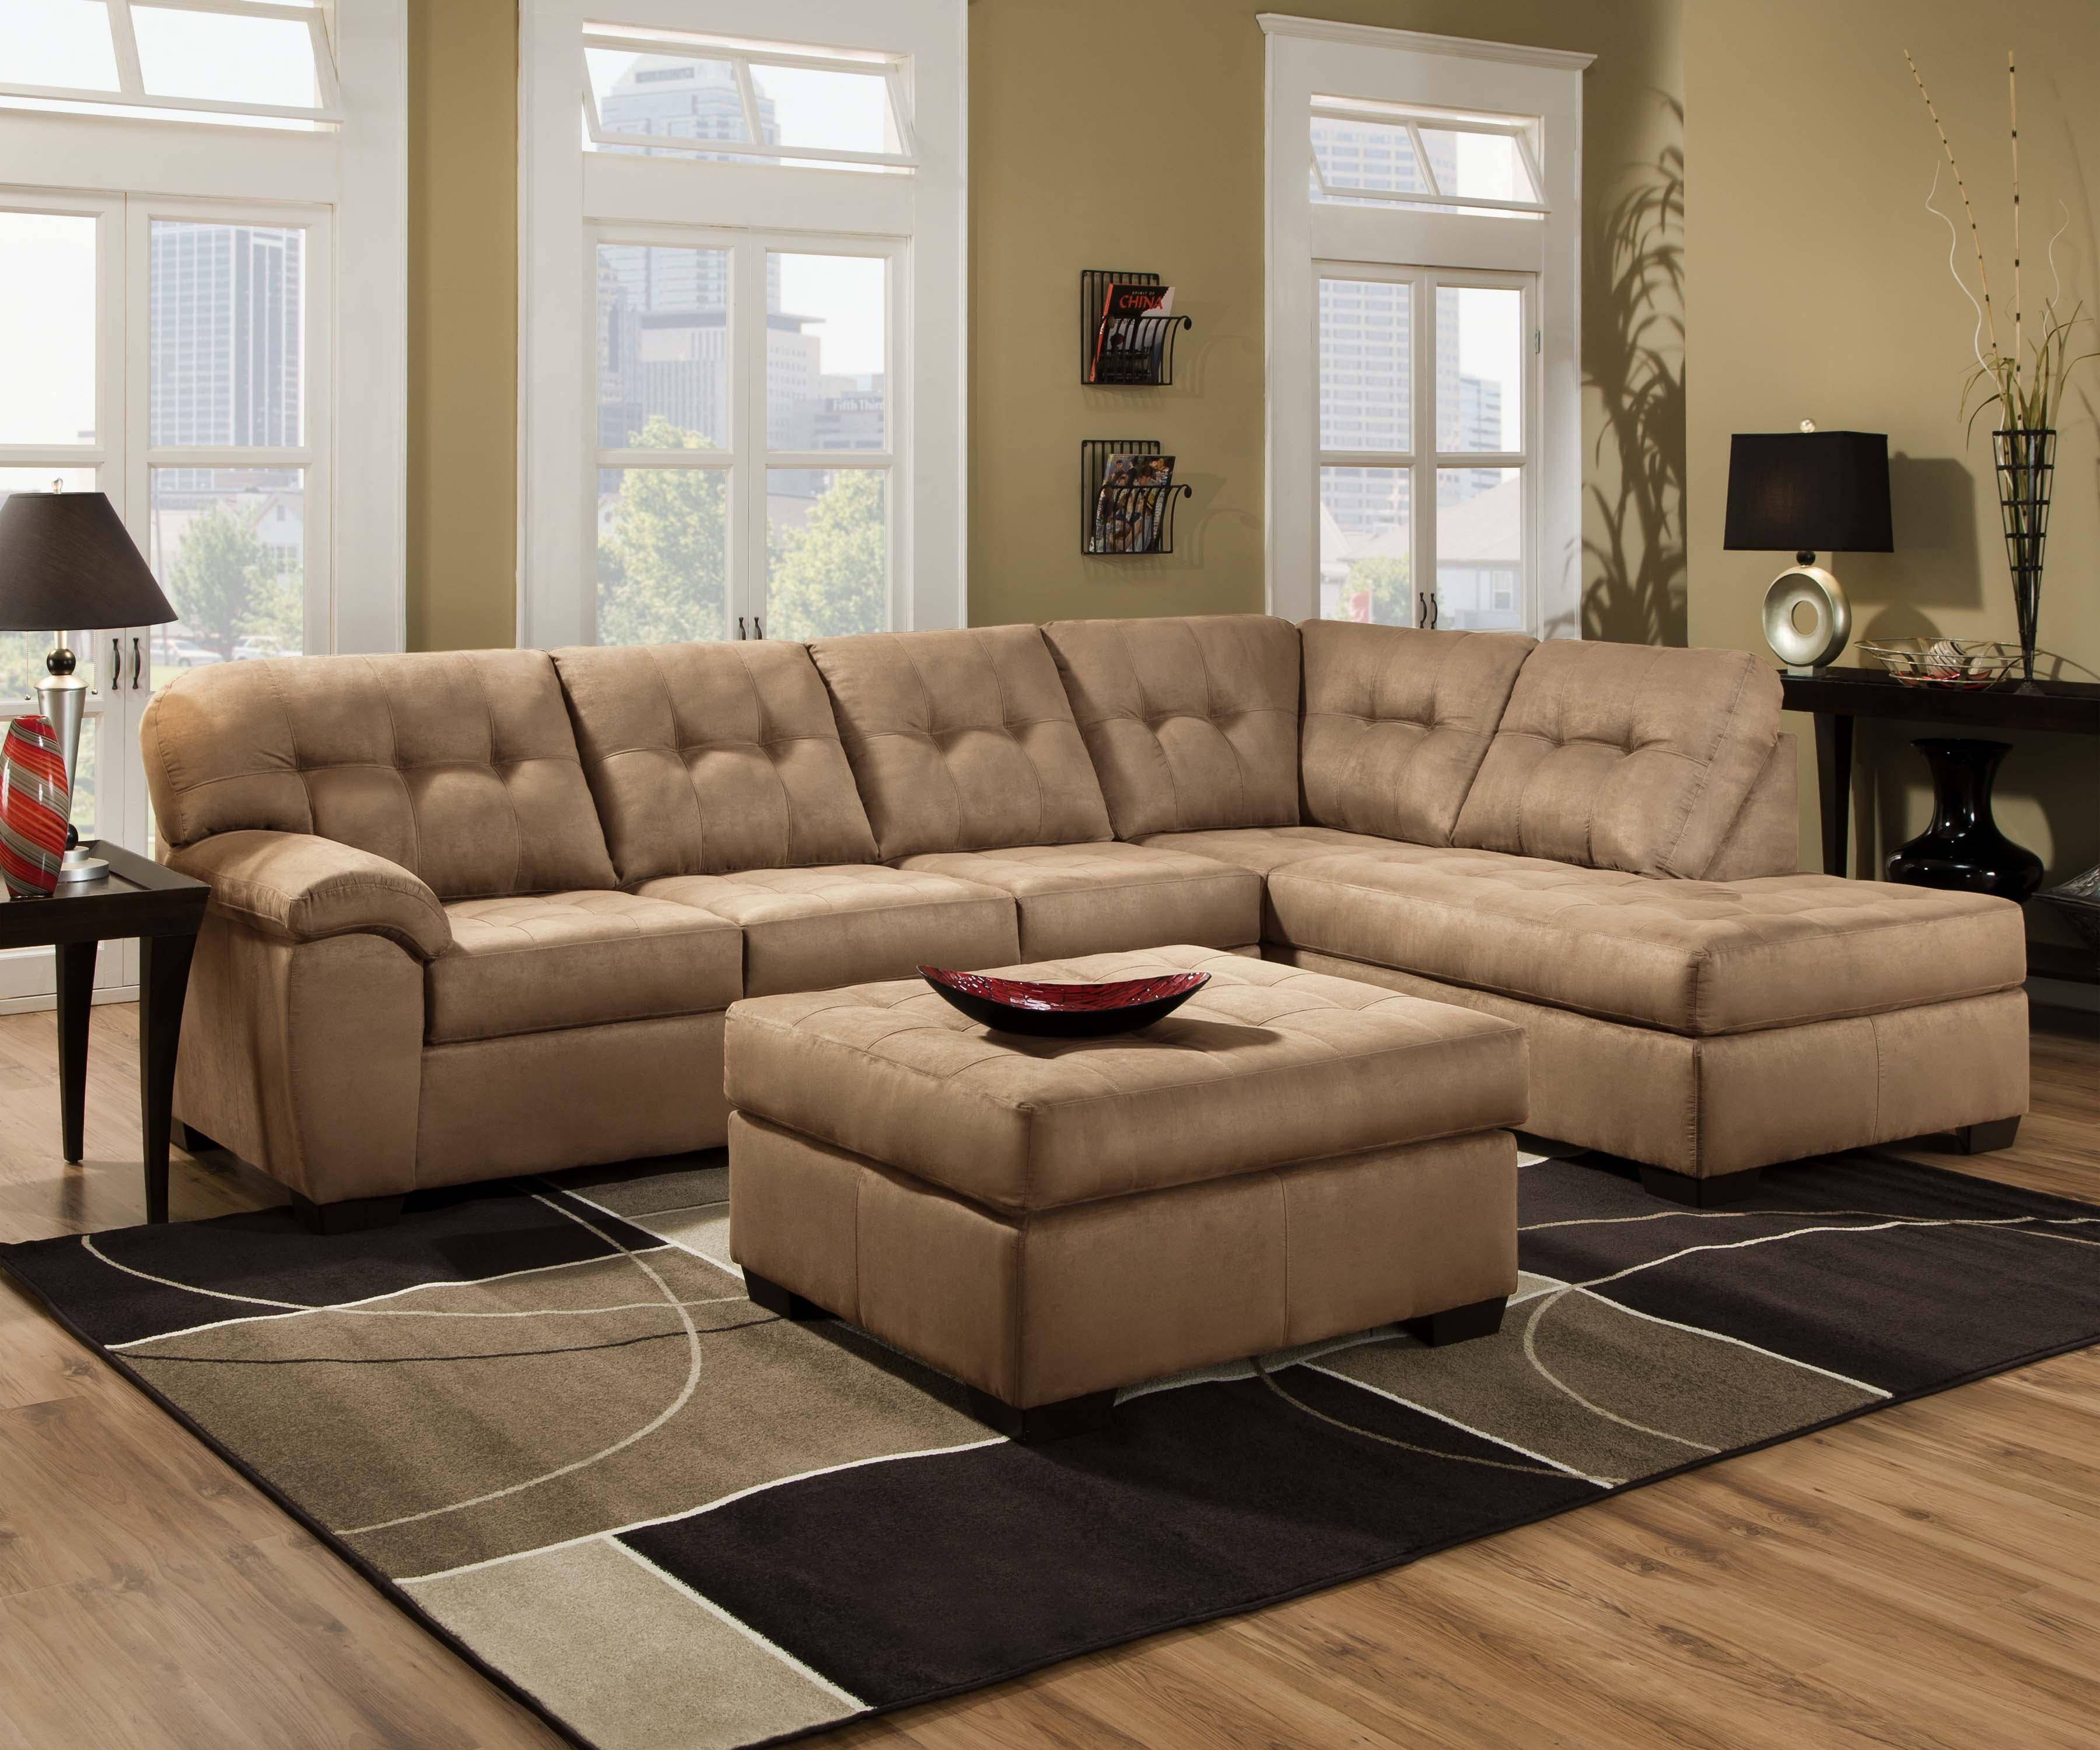 United Furniture Industries 9558 2 Piece Sectional Sofa with Chaise - Item Number: 9558 LAF Sofa+RAF Chaise Latte